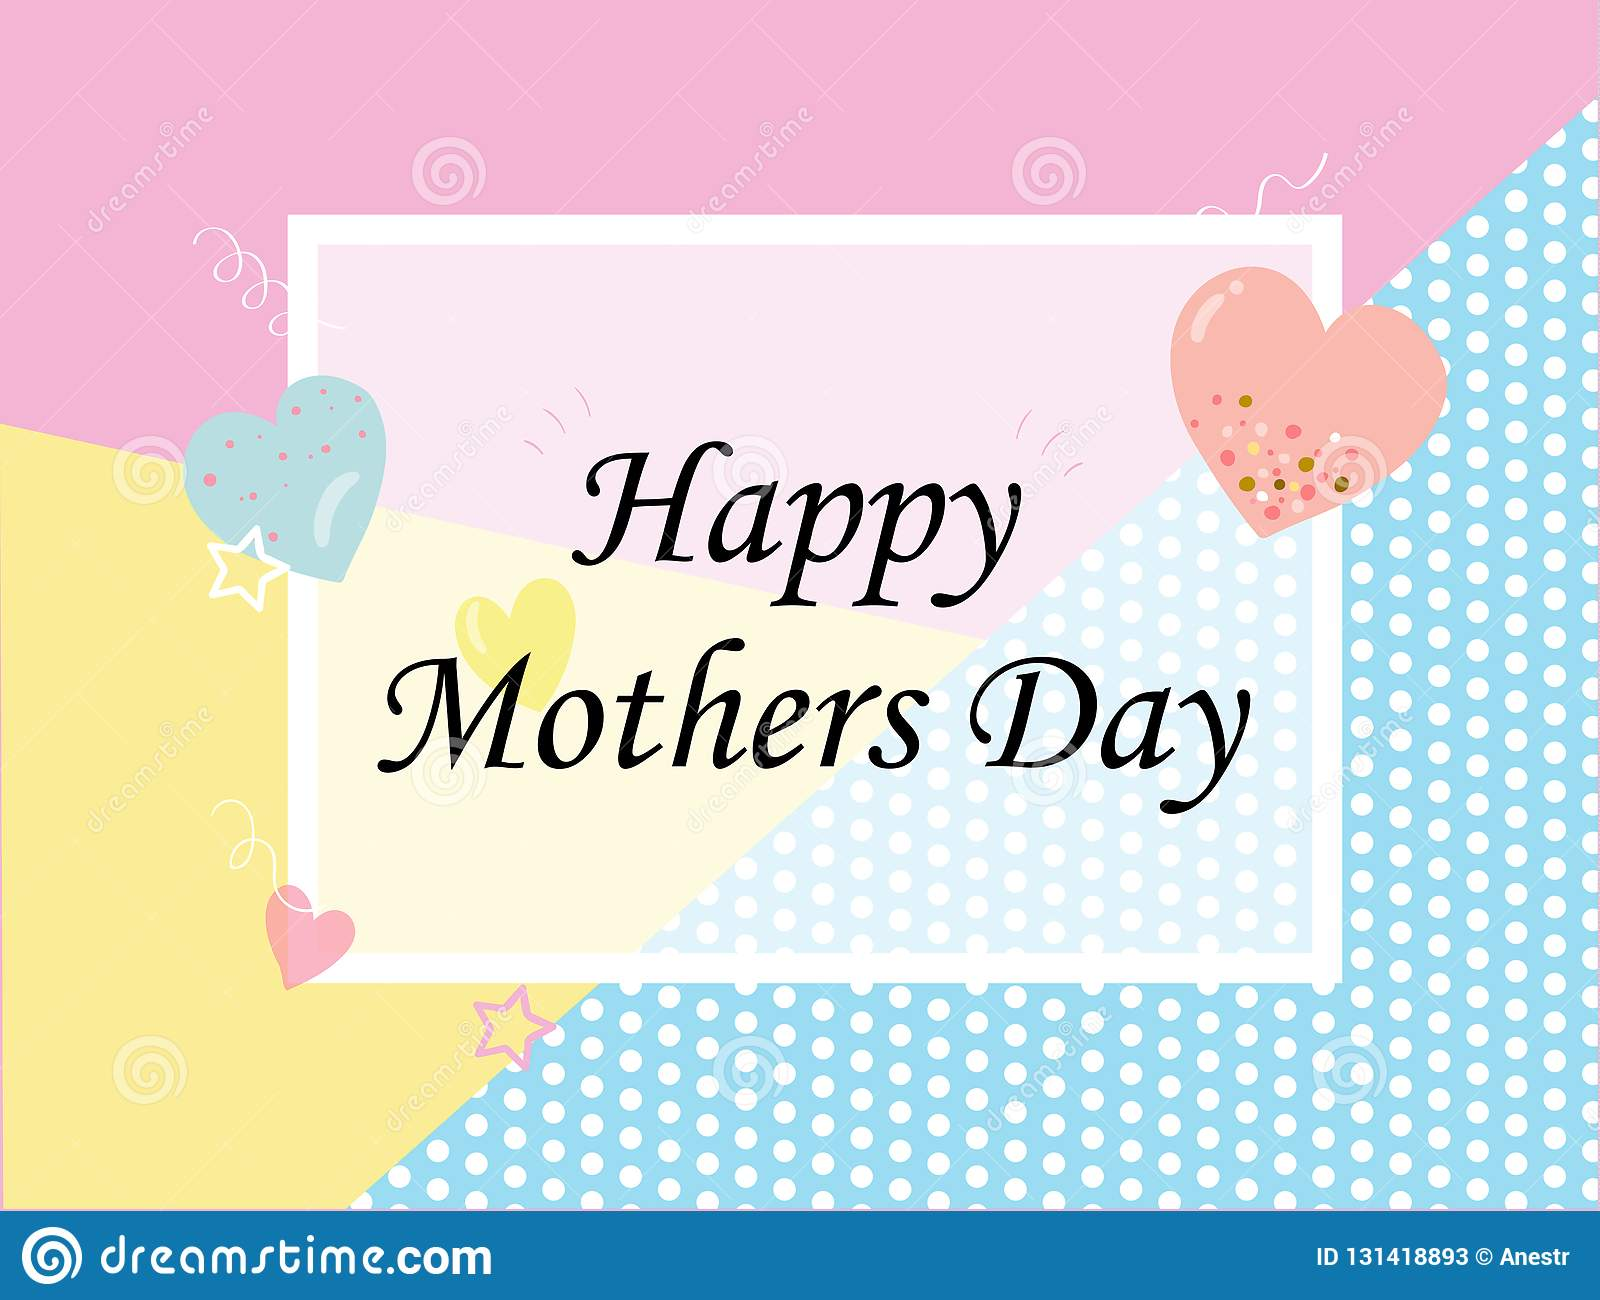 Mothers day sale background layout with Heart Shaped Balloons for banners,Wallpaper,flyers, invitation, posters, brochure, voucher